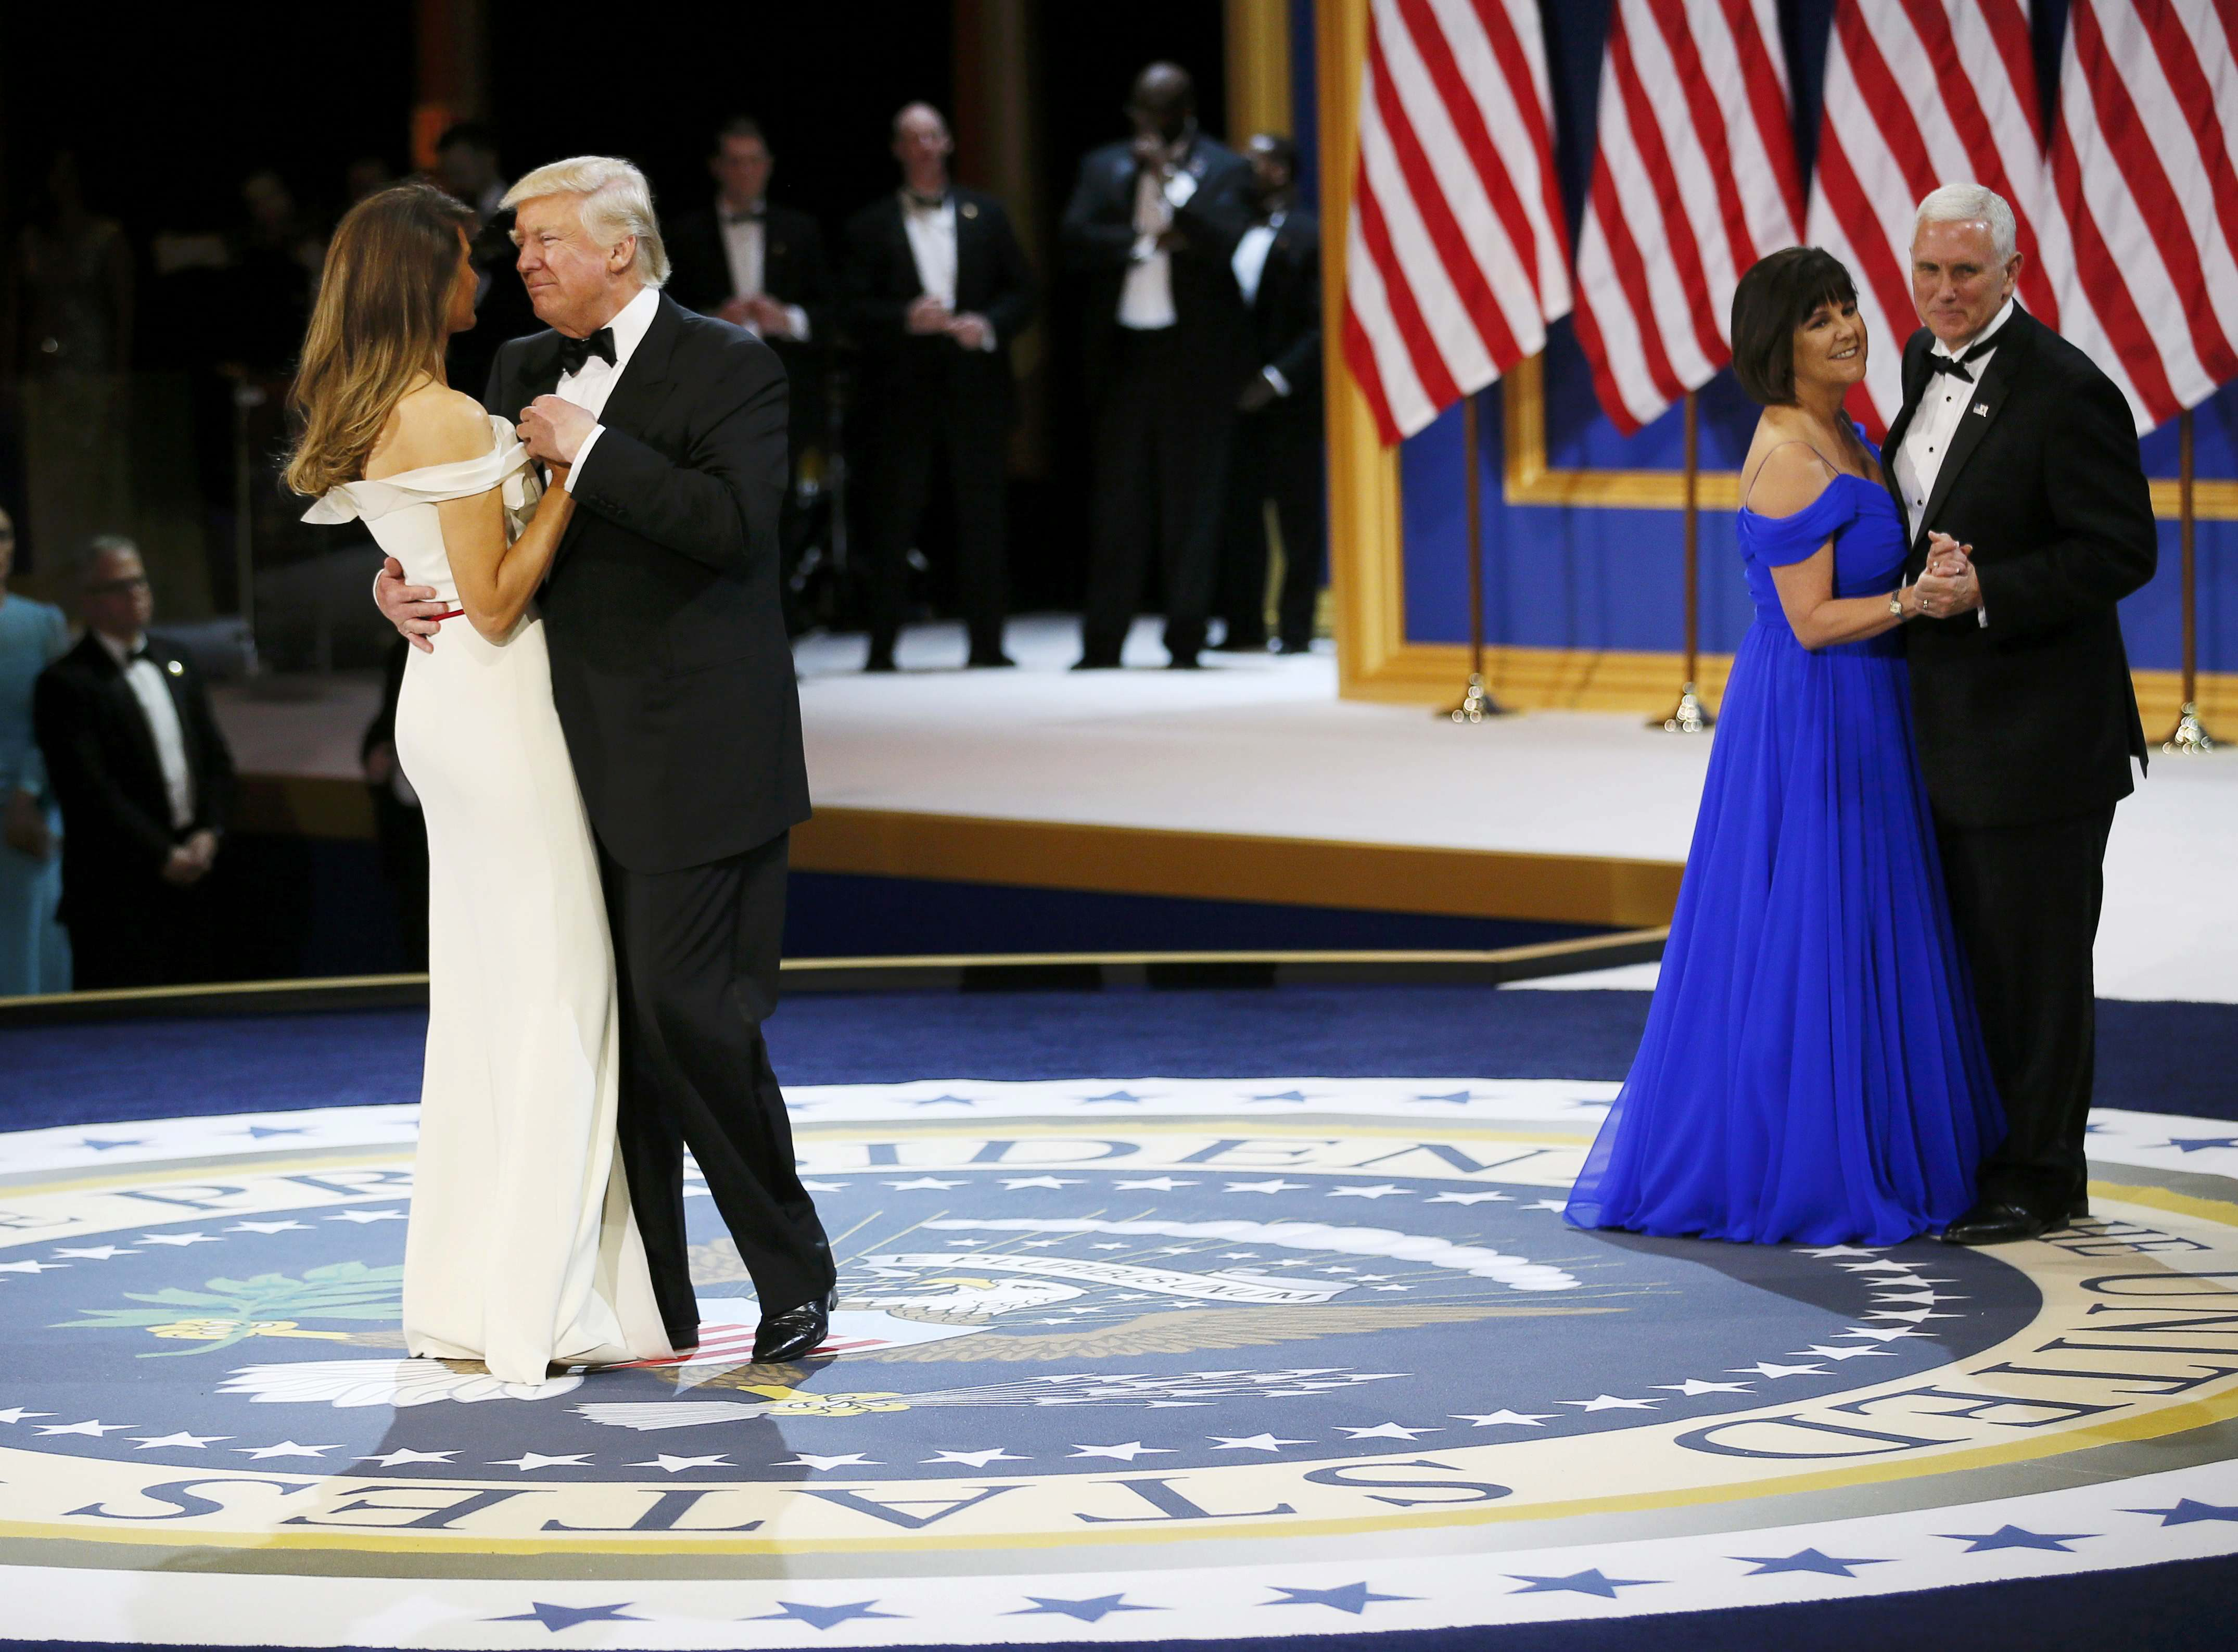 U.S. President Donald Trump and his wife first lady Melania Trump dance with Vice President Mike Pence and his wife Karen at the